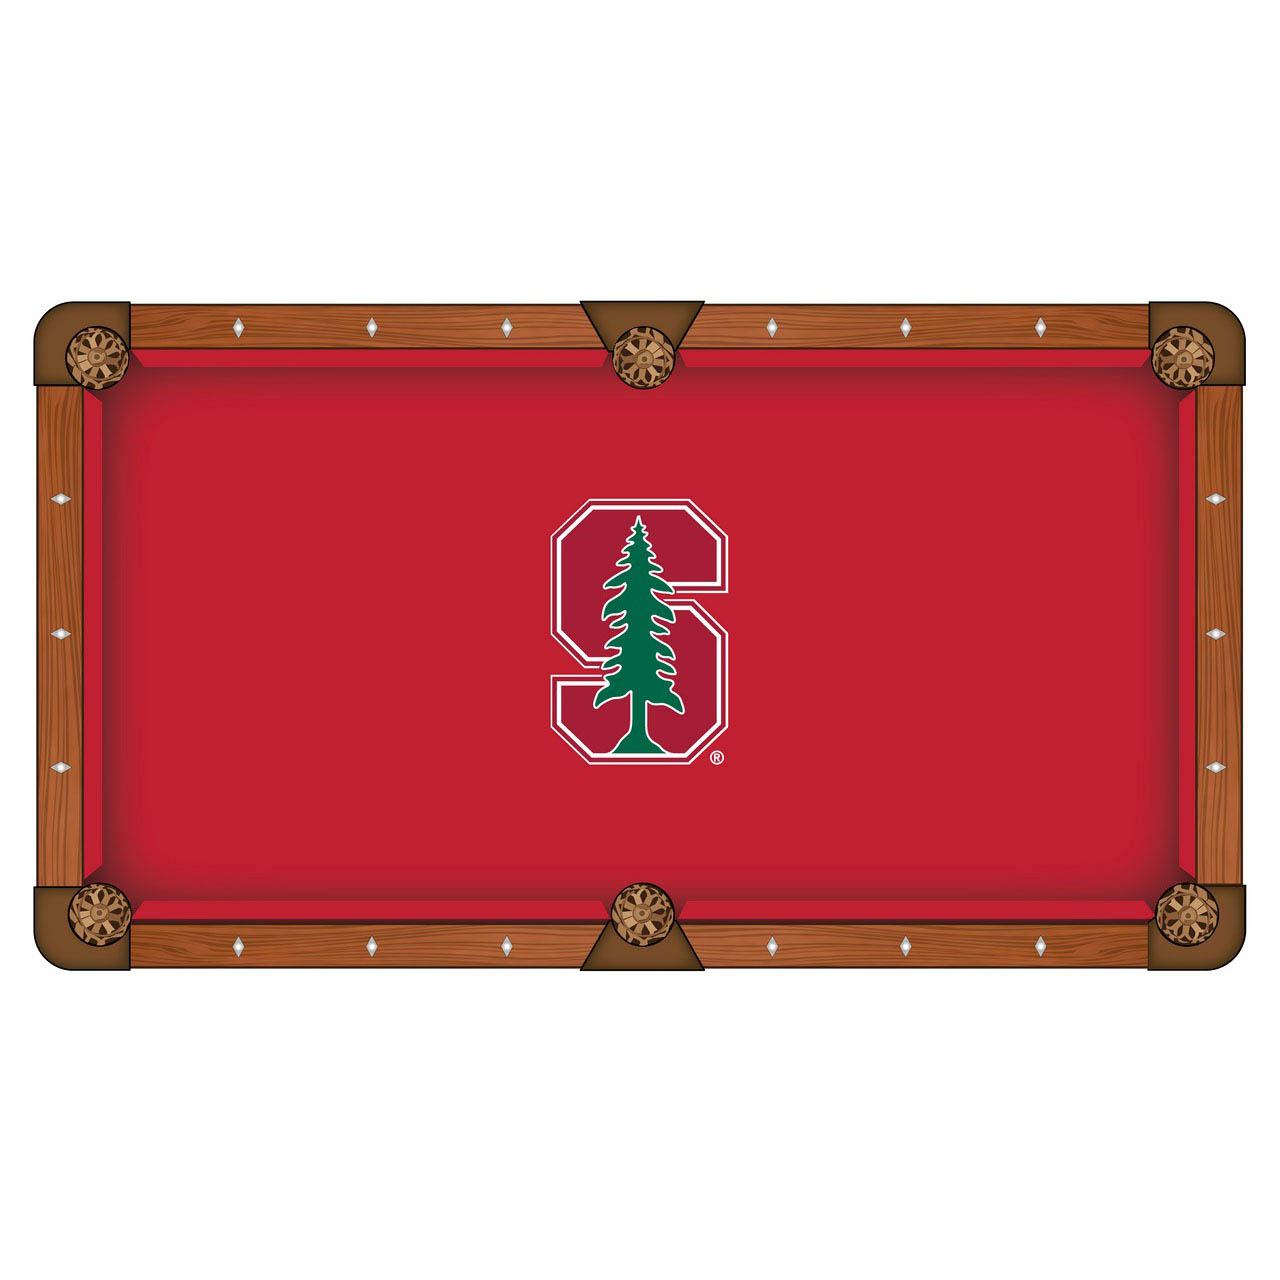 Beautiful Stanford University Pool Table Cloth Product Photo